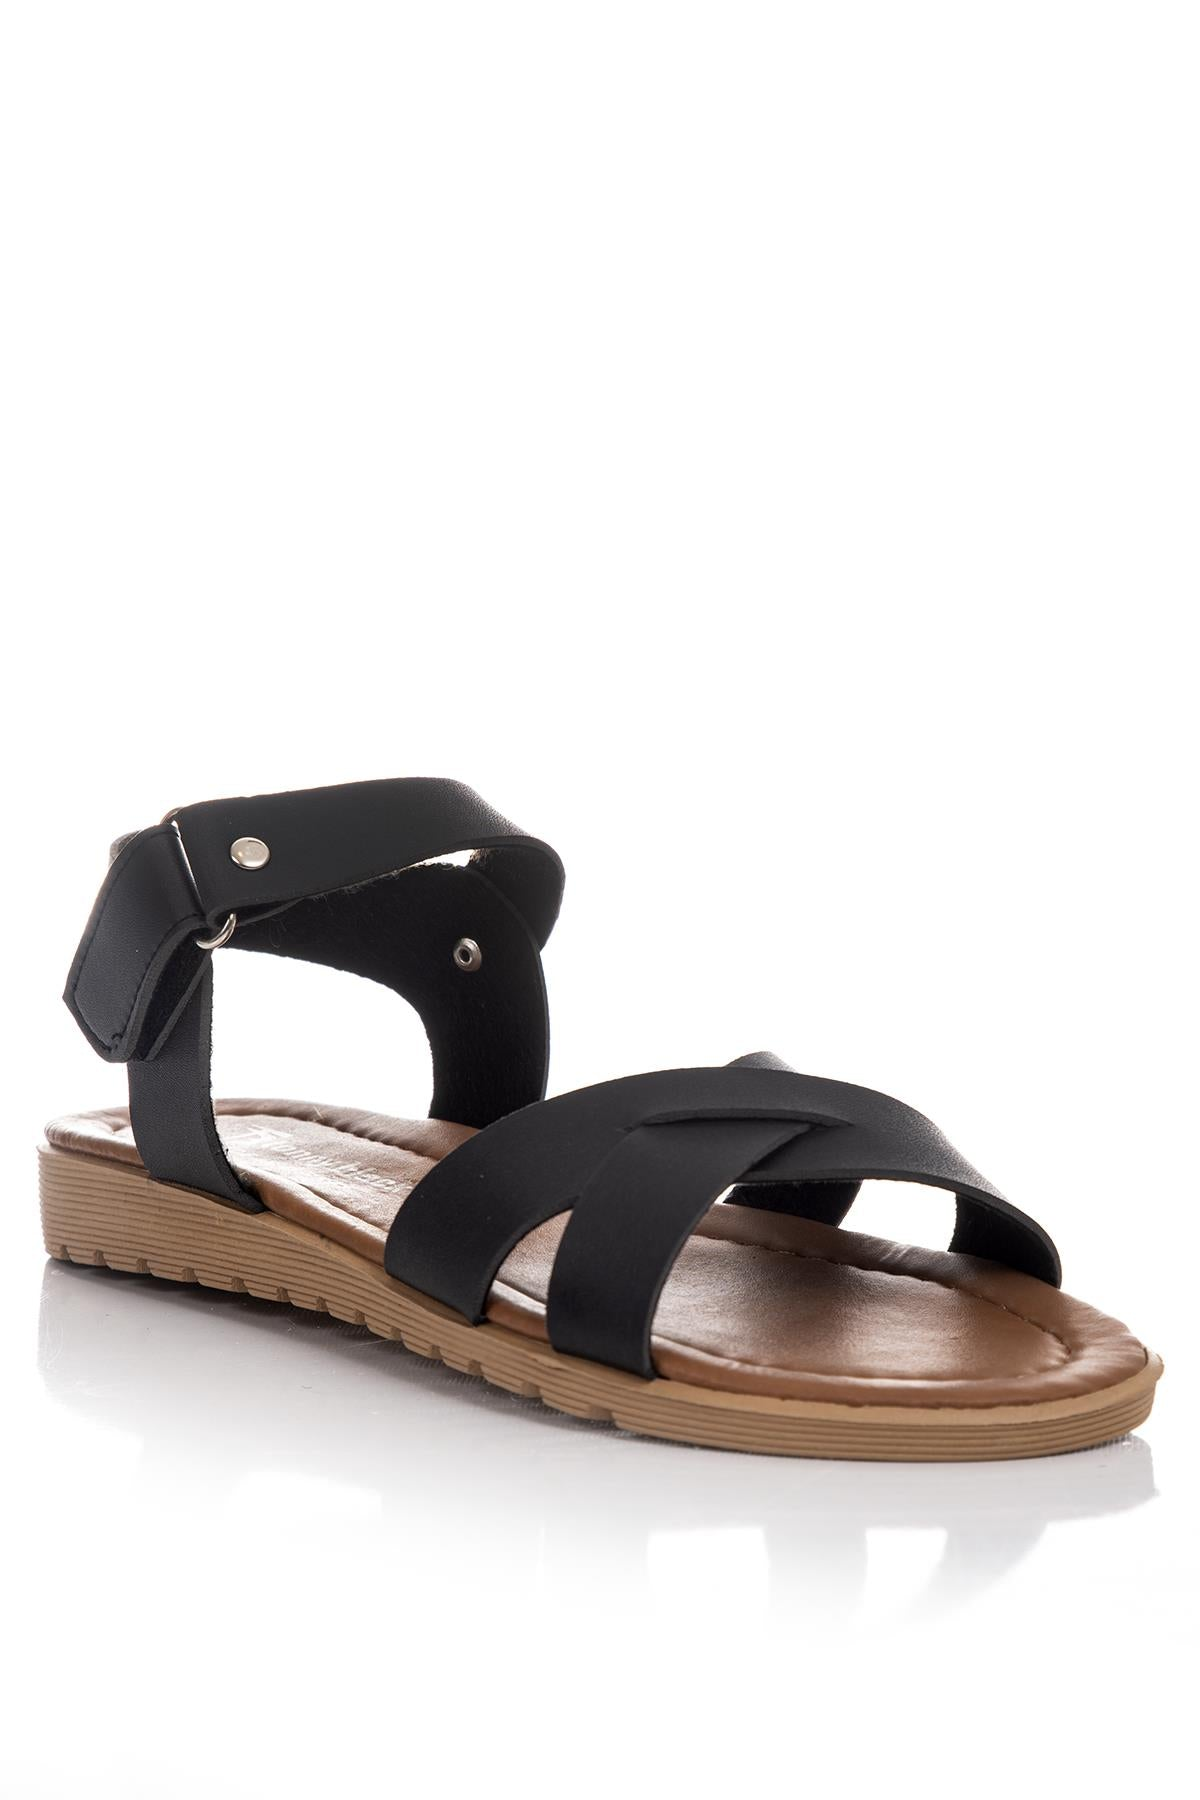 Women's Black Casual Sandals